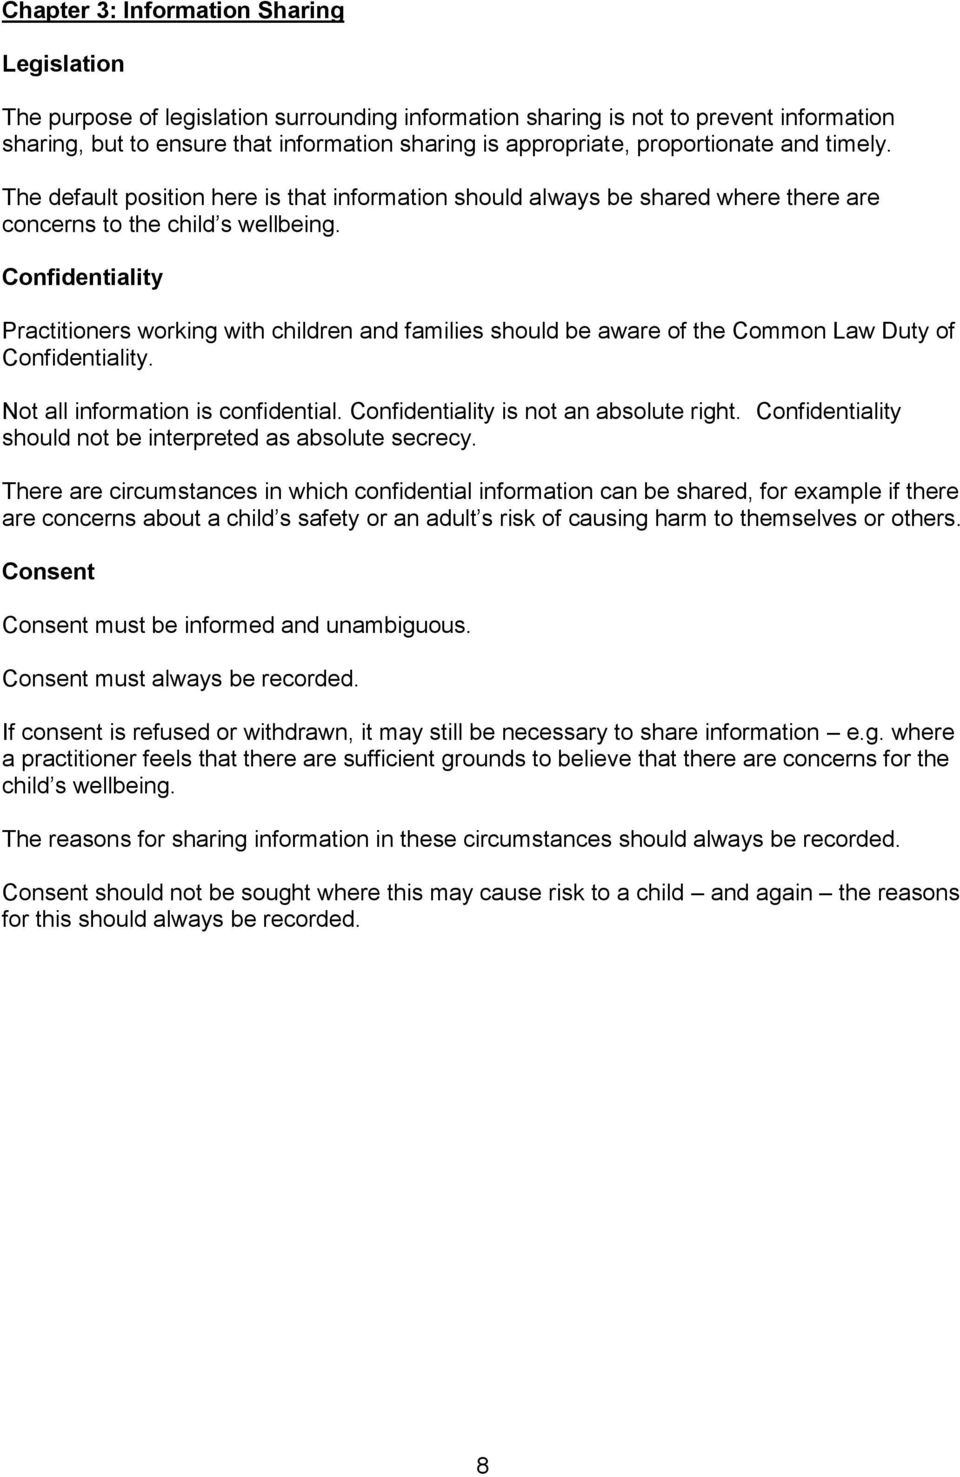 Confidentiality Practitioners working with children and families should be aware of the Common Law Duty of Confidentiality. Not all information is confidential.